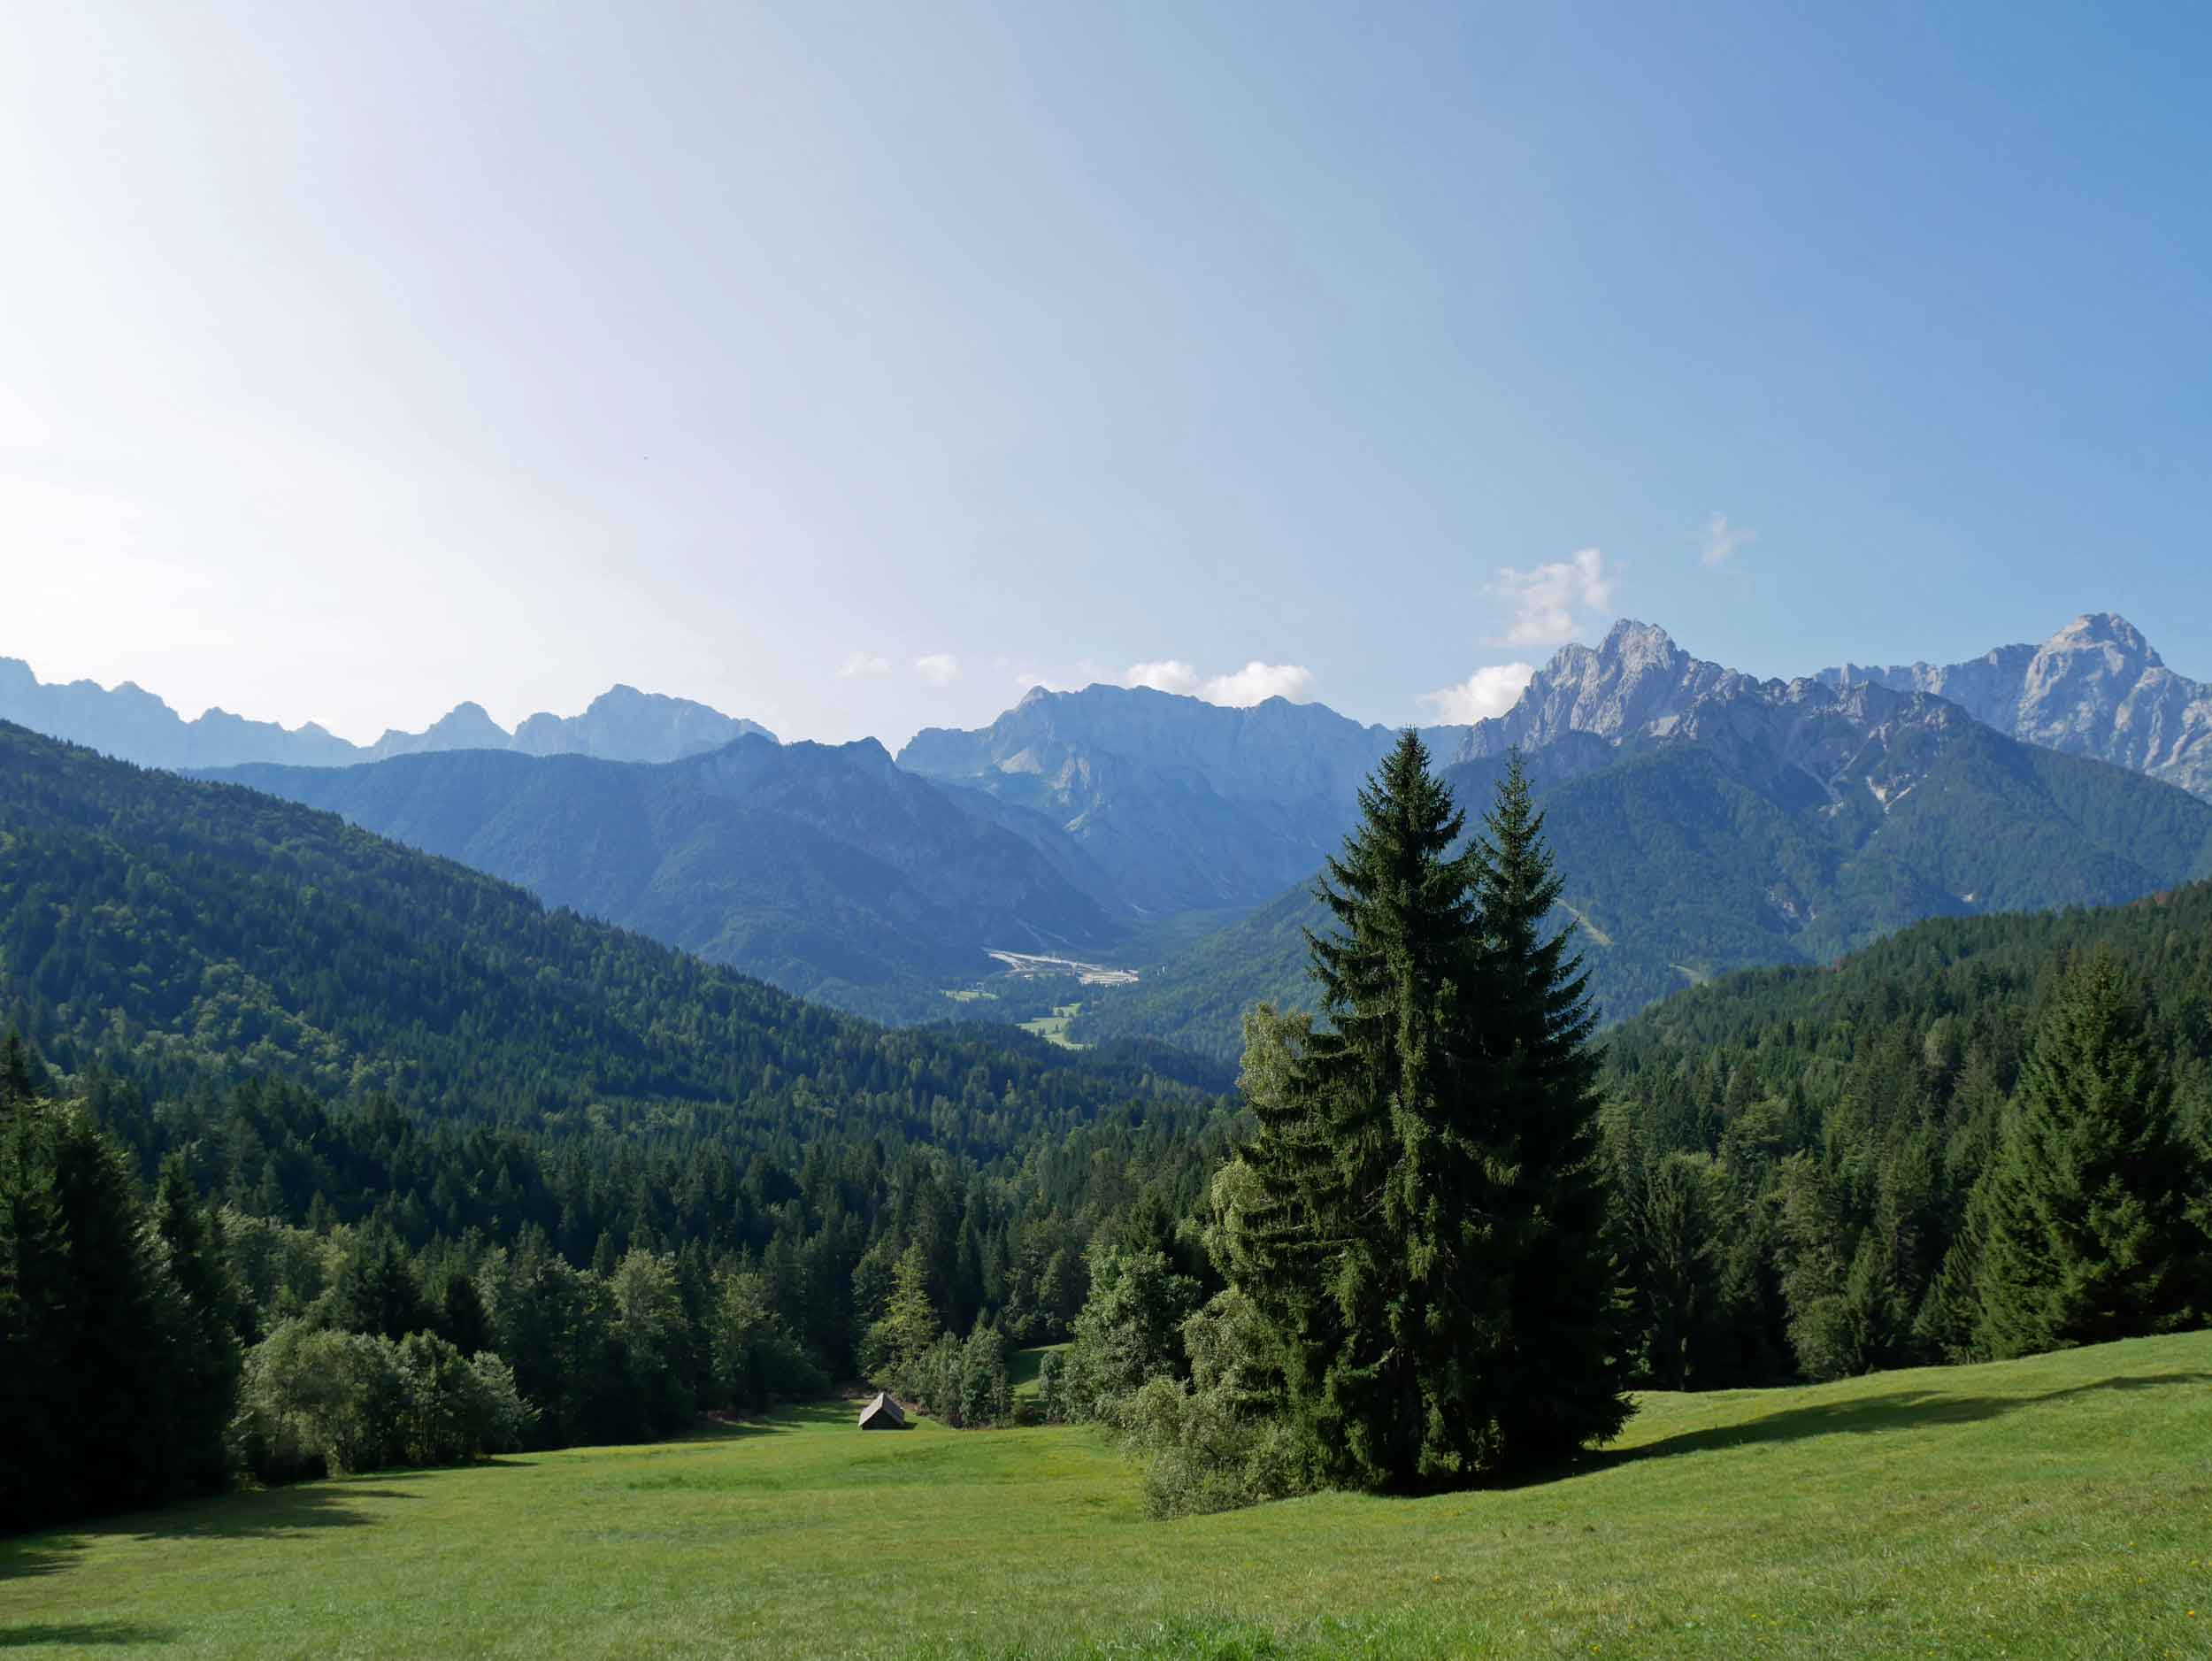 The next morning, we made the ascent to Tromeja, the triple border region in Slovenia's far northwest which offered scenic views (Aug 22).